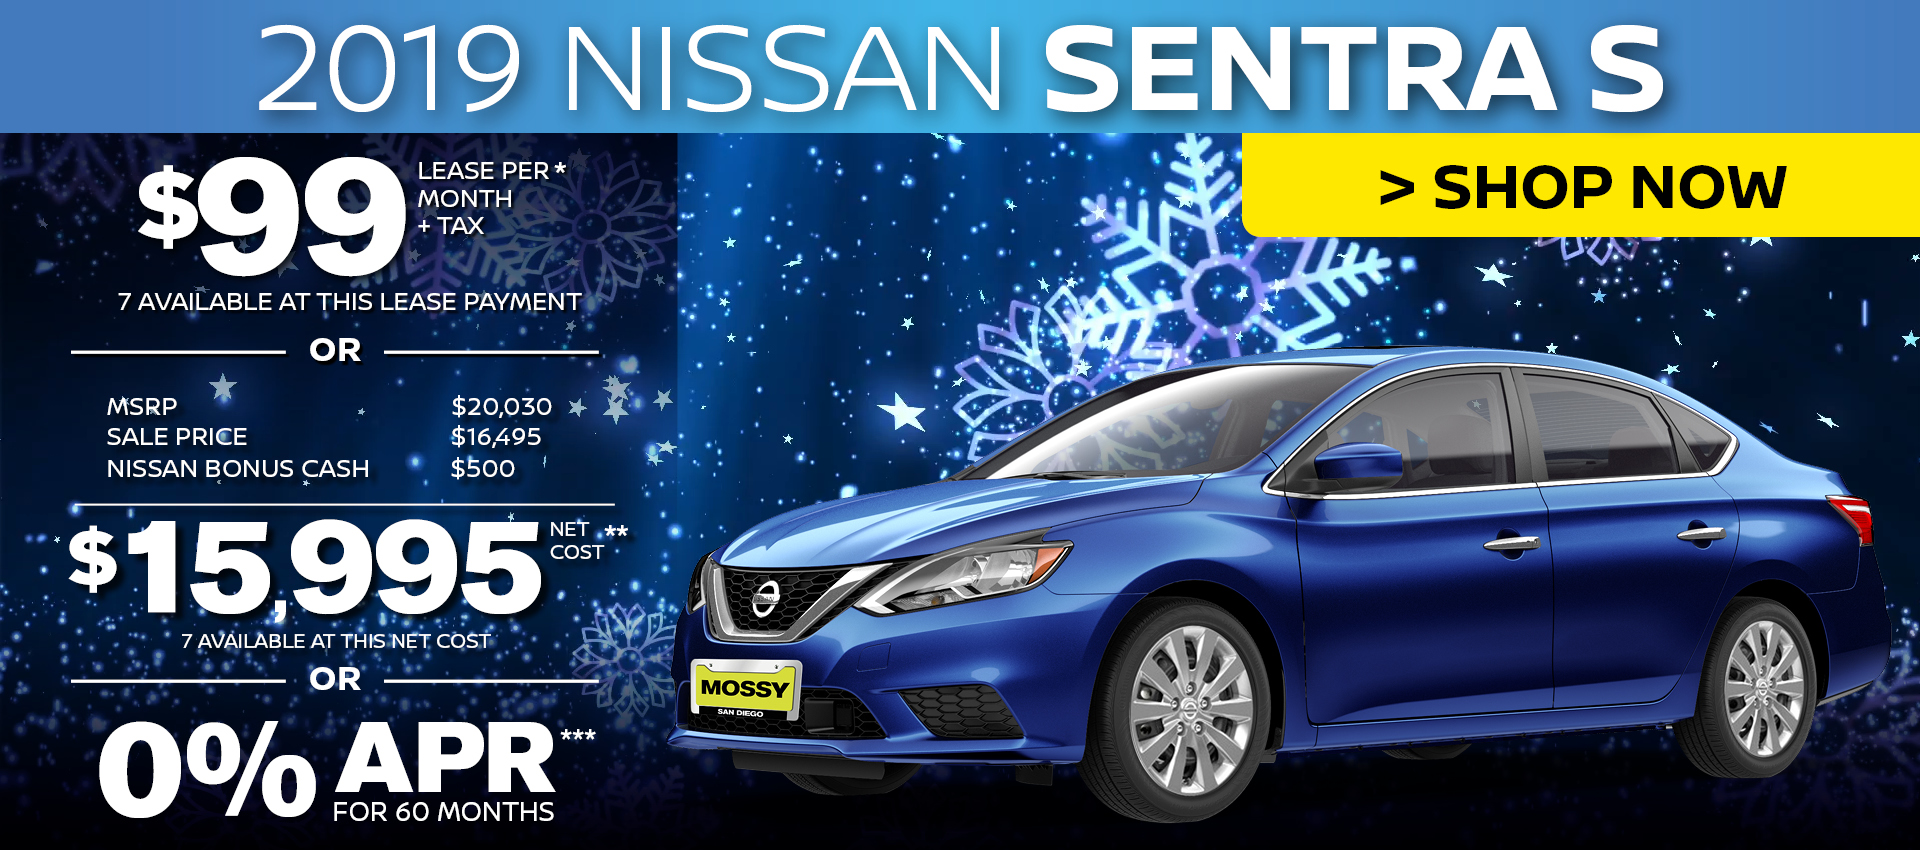 Mossy Nissan - Sentra $15,995 Purchase HP